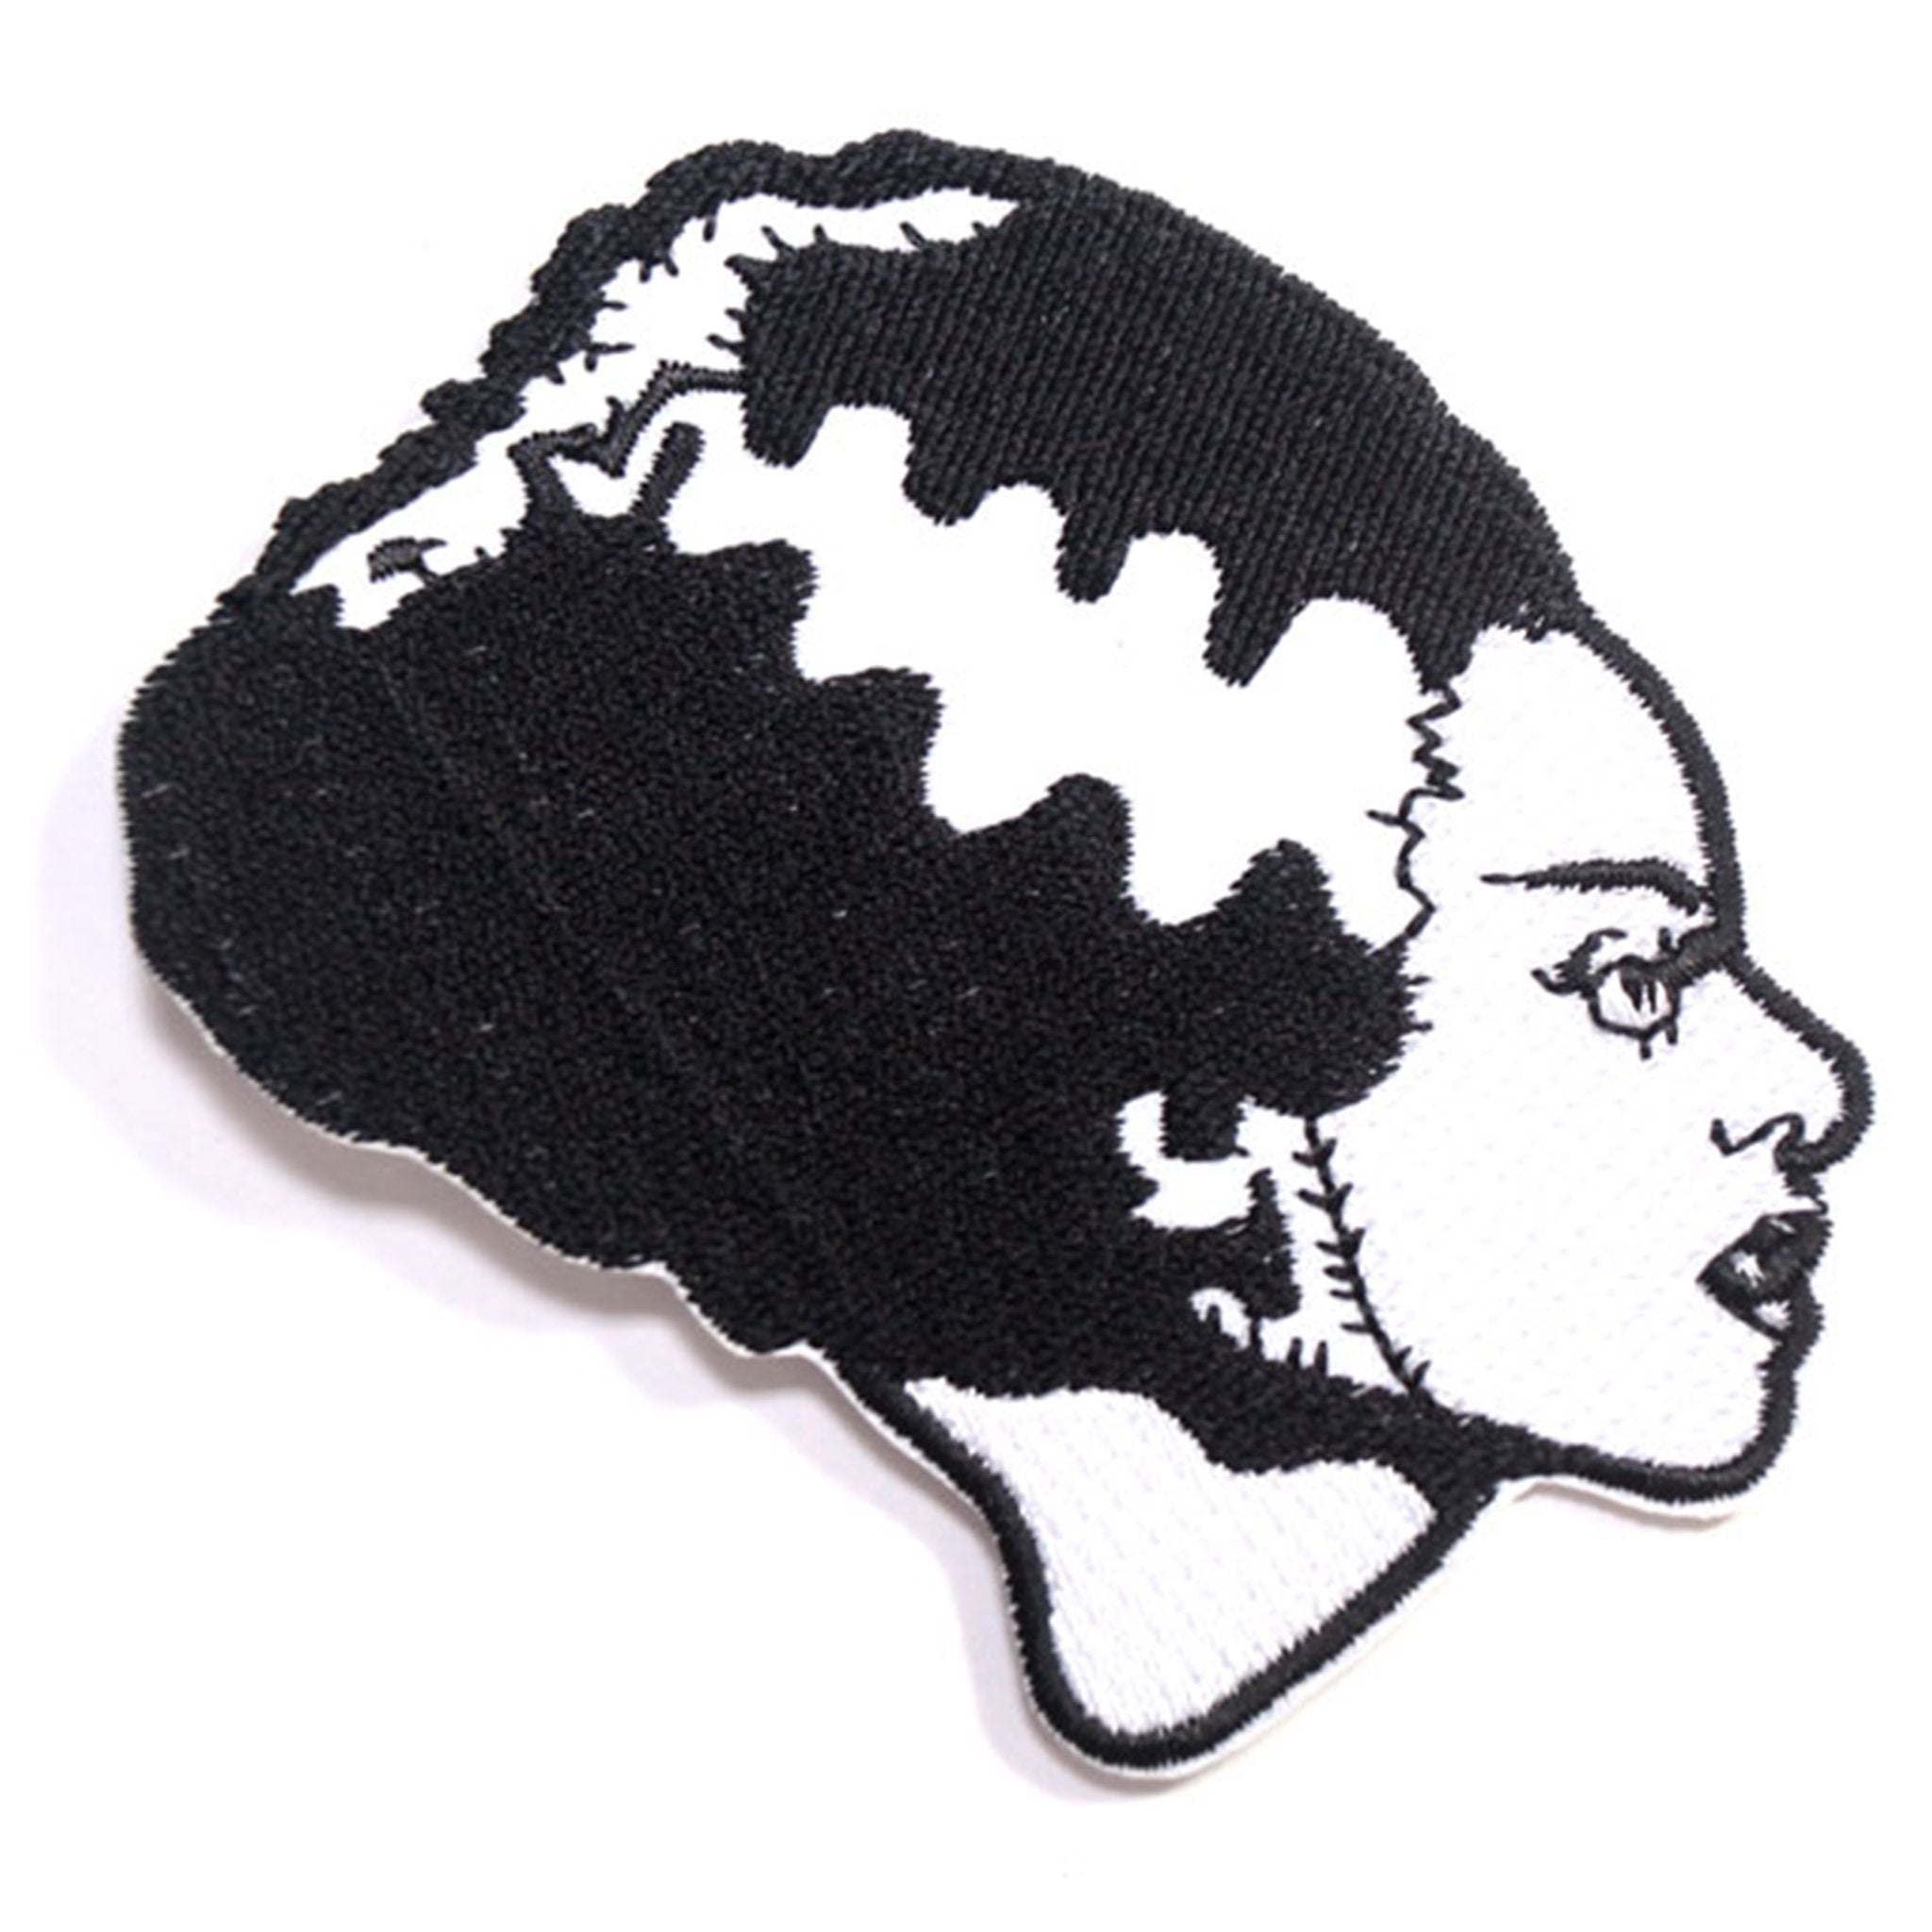 Bride of Frankenstein Patch - Black & White